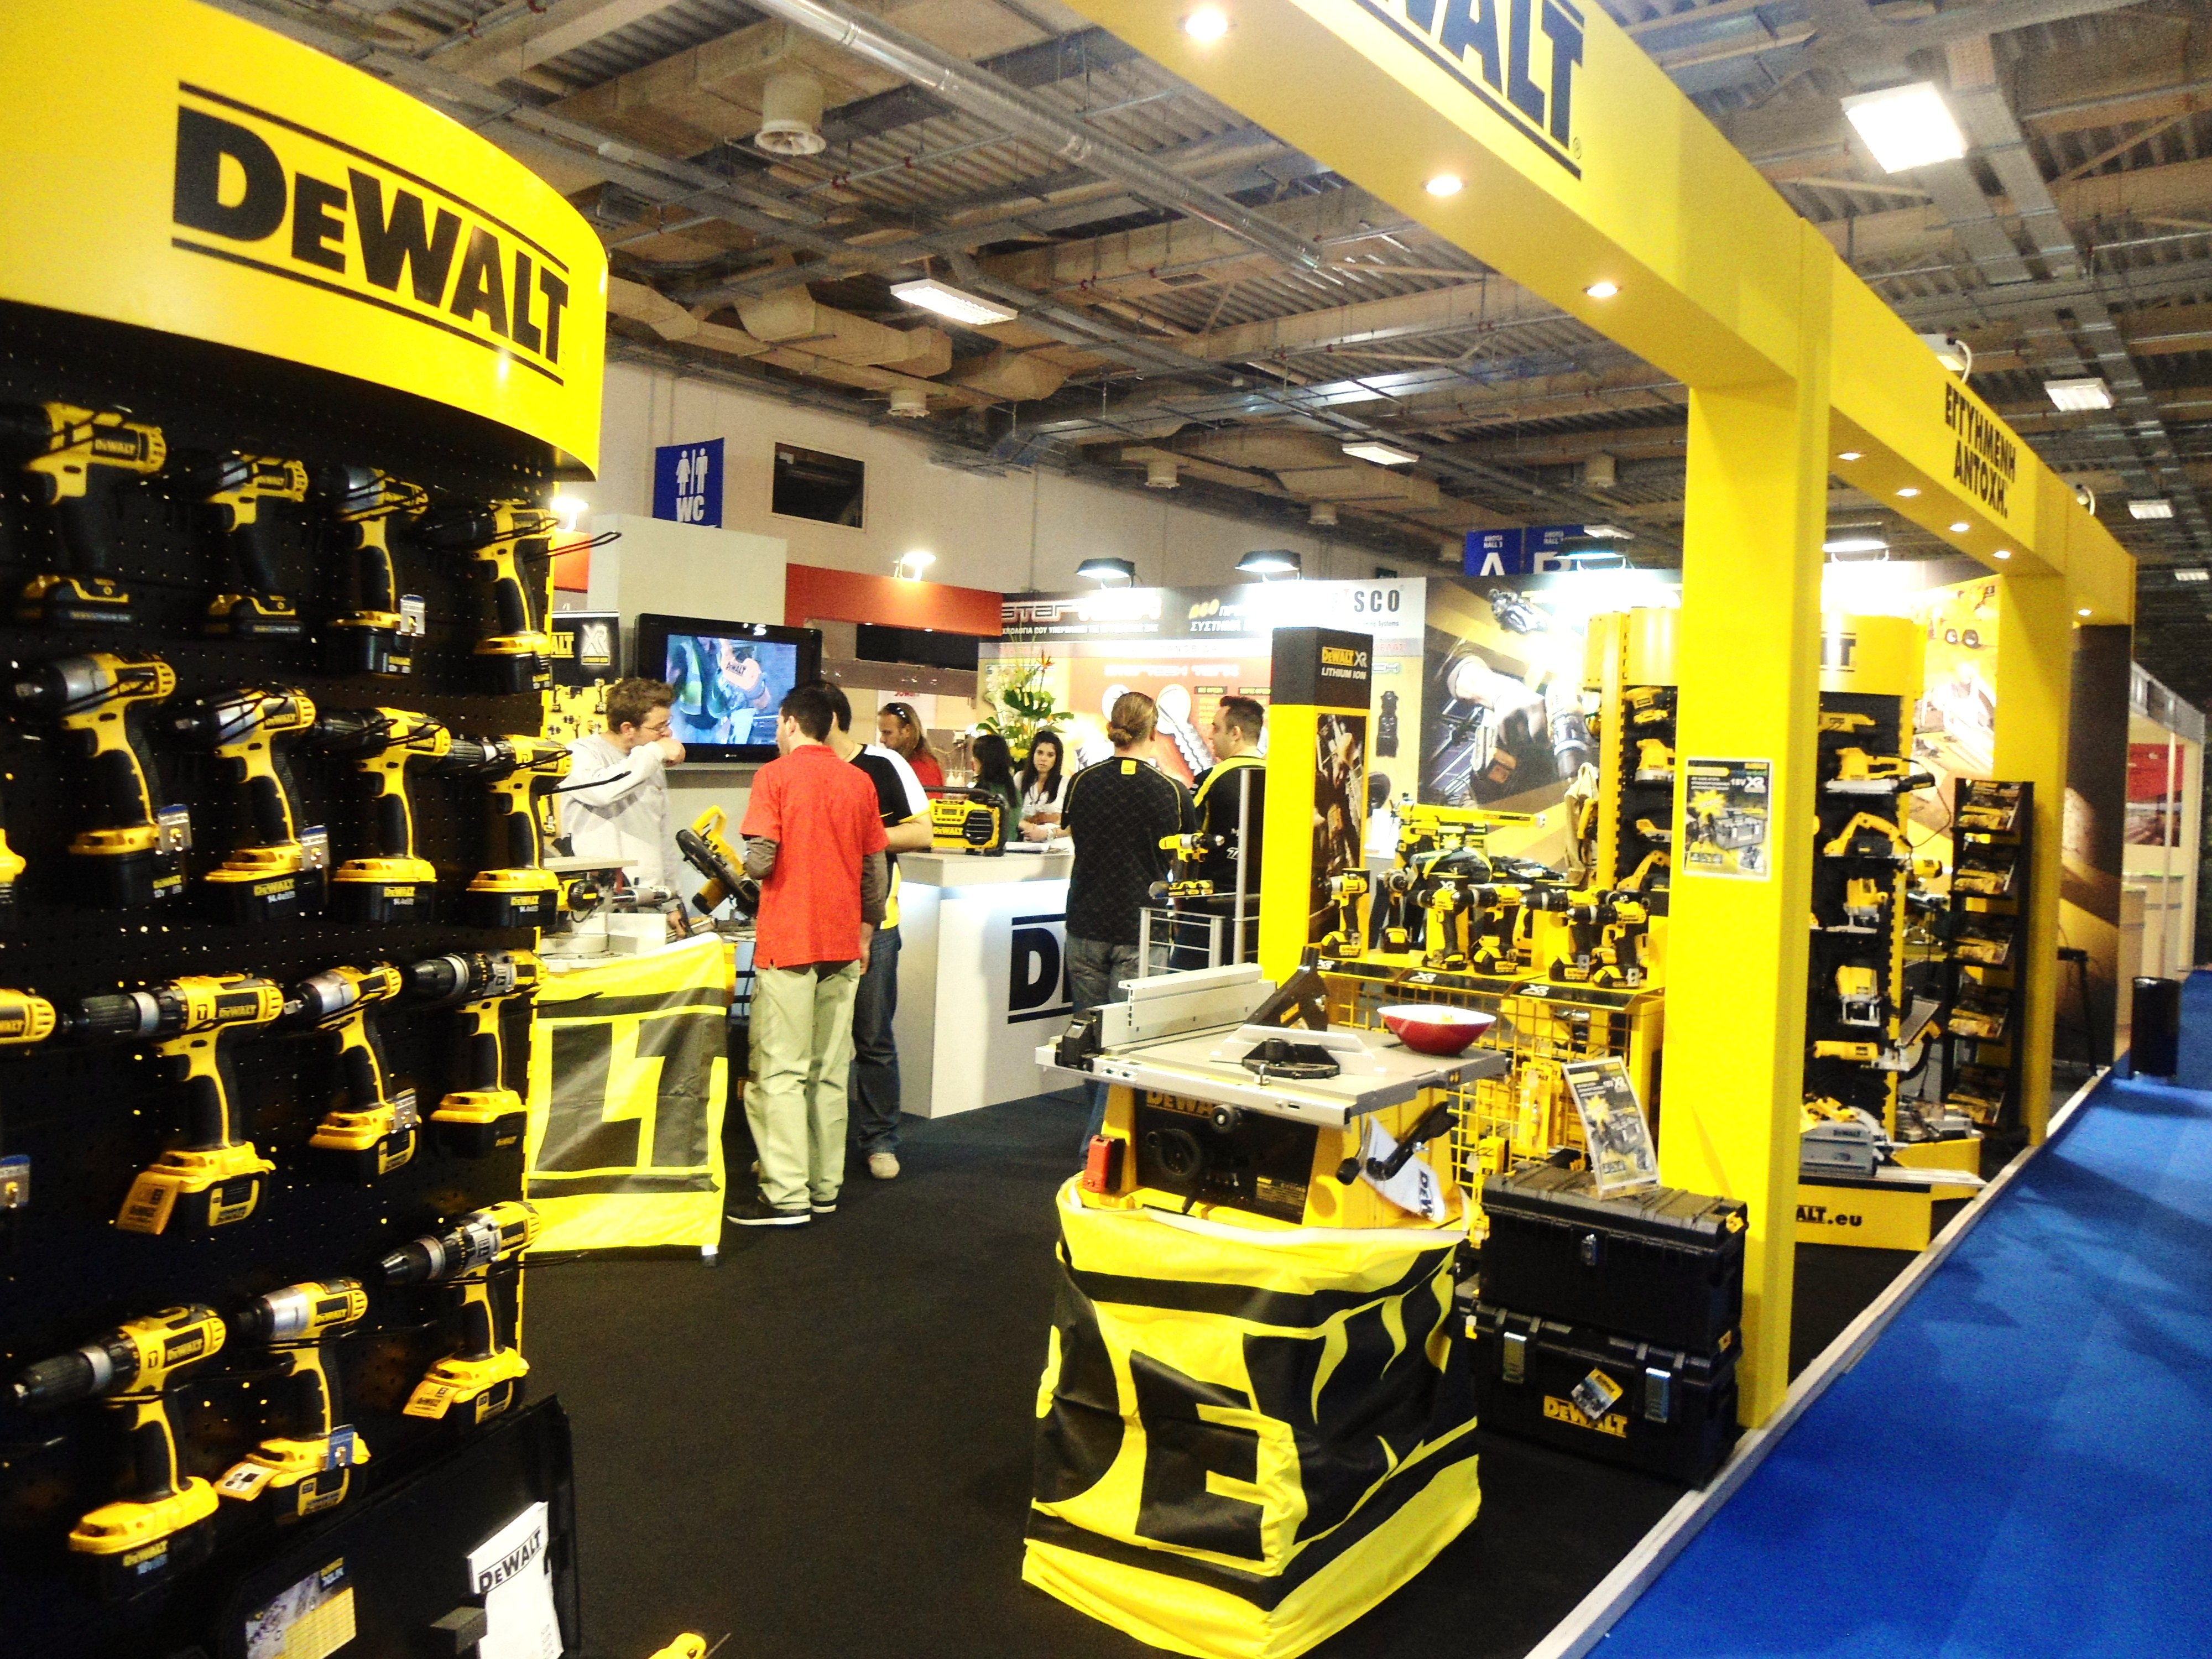 medwood-2012-dewalt-en